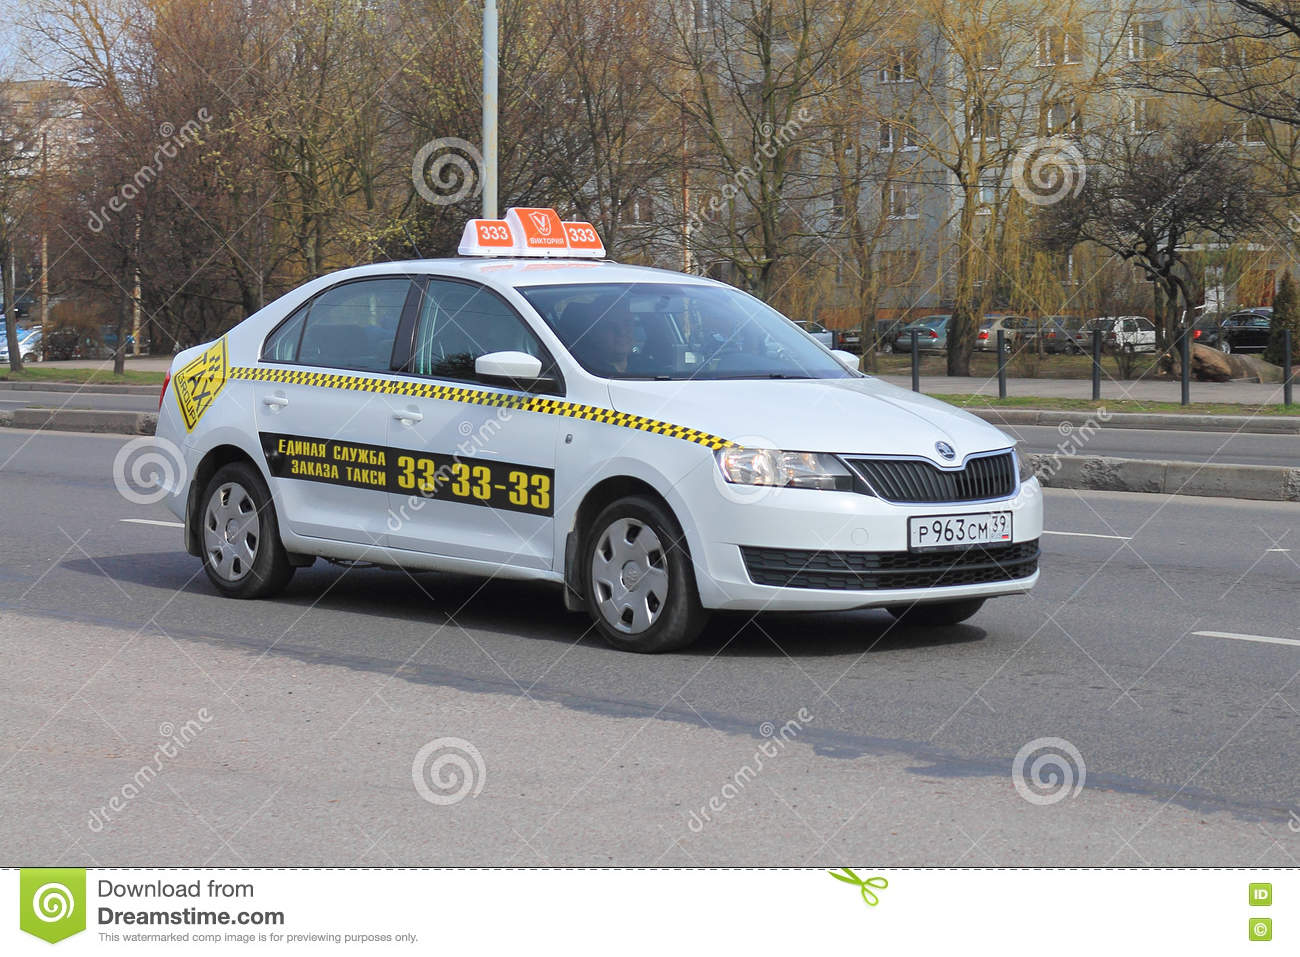 Taxi Victoria The White Car Of The Skoda Brand Editorial Image